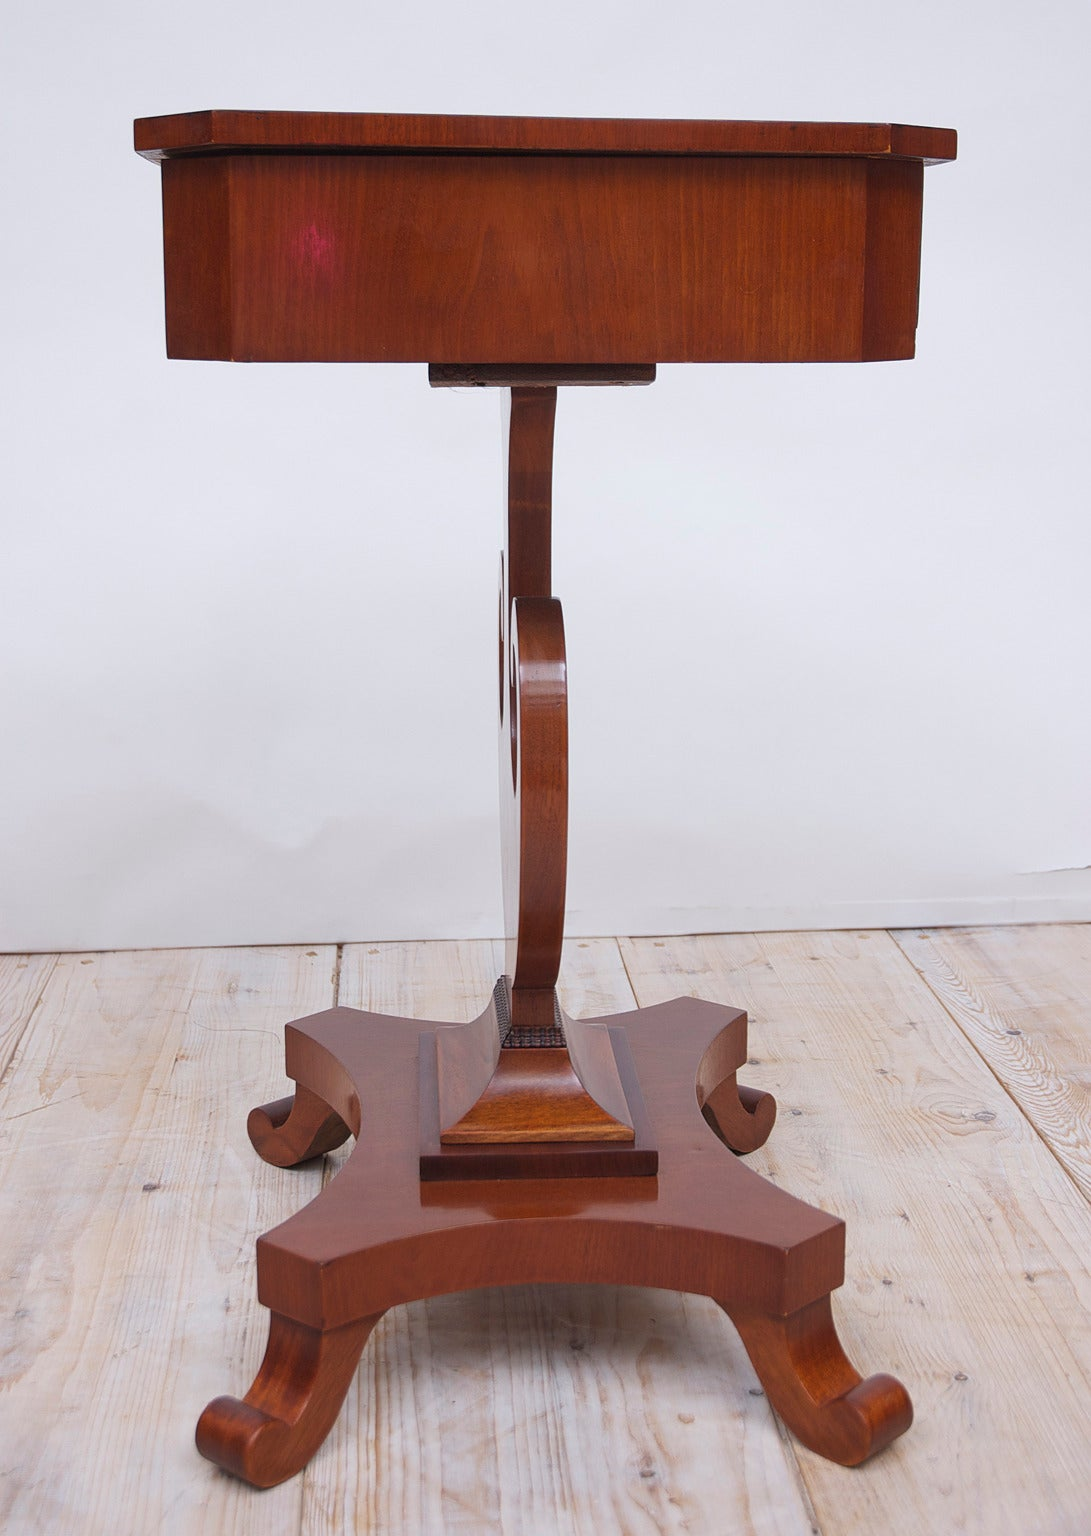 Antique Karl Johan Side Table with Lyre Base in Mahogany, Sweden, circa 1845 For Sale 2